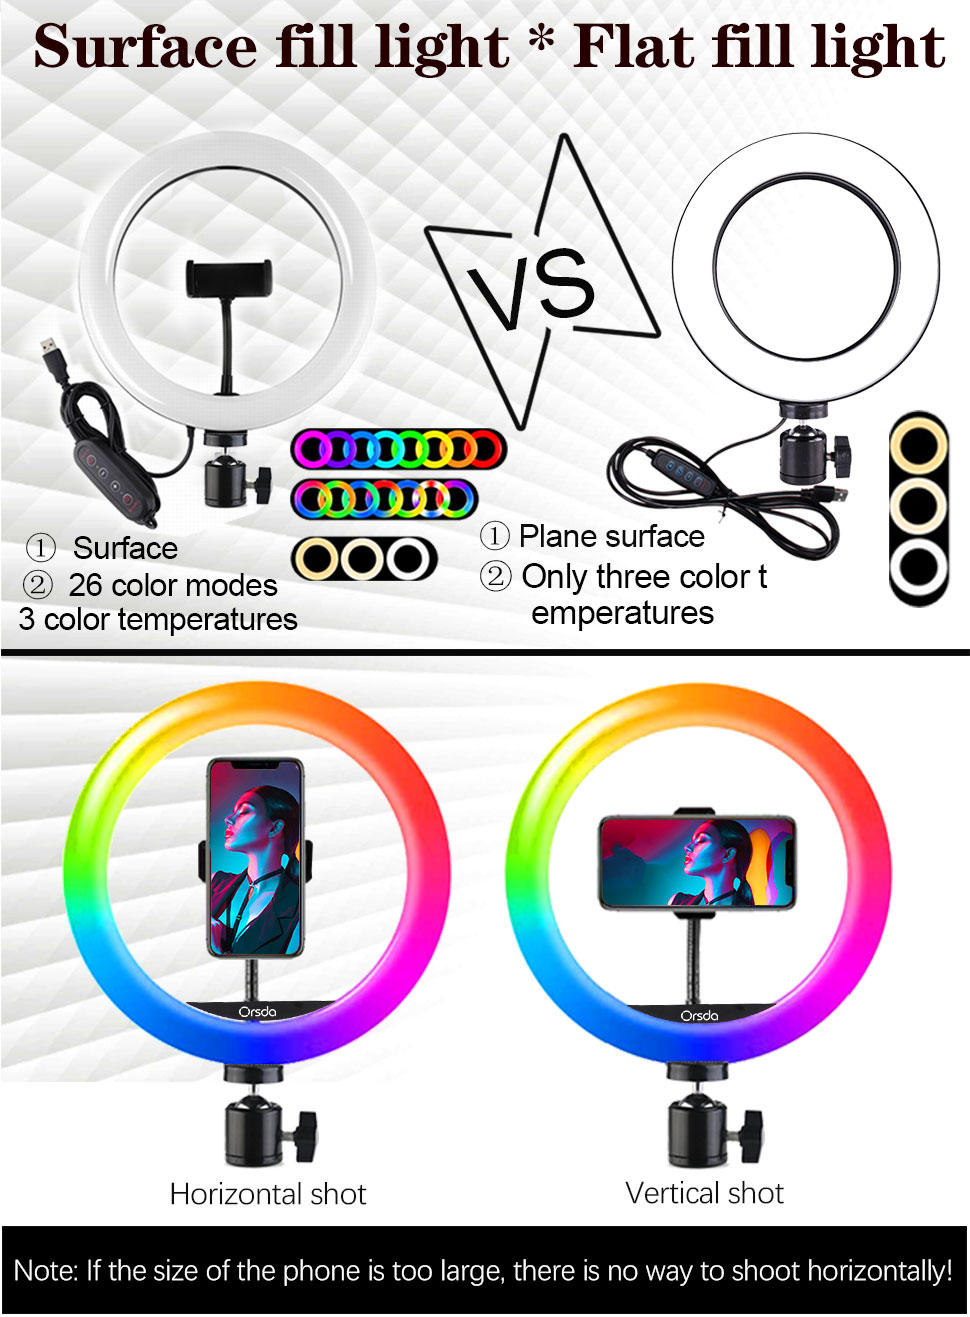 Hd8329d5f4bd14926be5ecb4d897dd0a6P Orsda 10-13 Inch RGB Ring Light Tripod LED Ring Light Selfie Ring Light with Stand RGB 26 Colors Video Light For Youtube Tik Tok